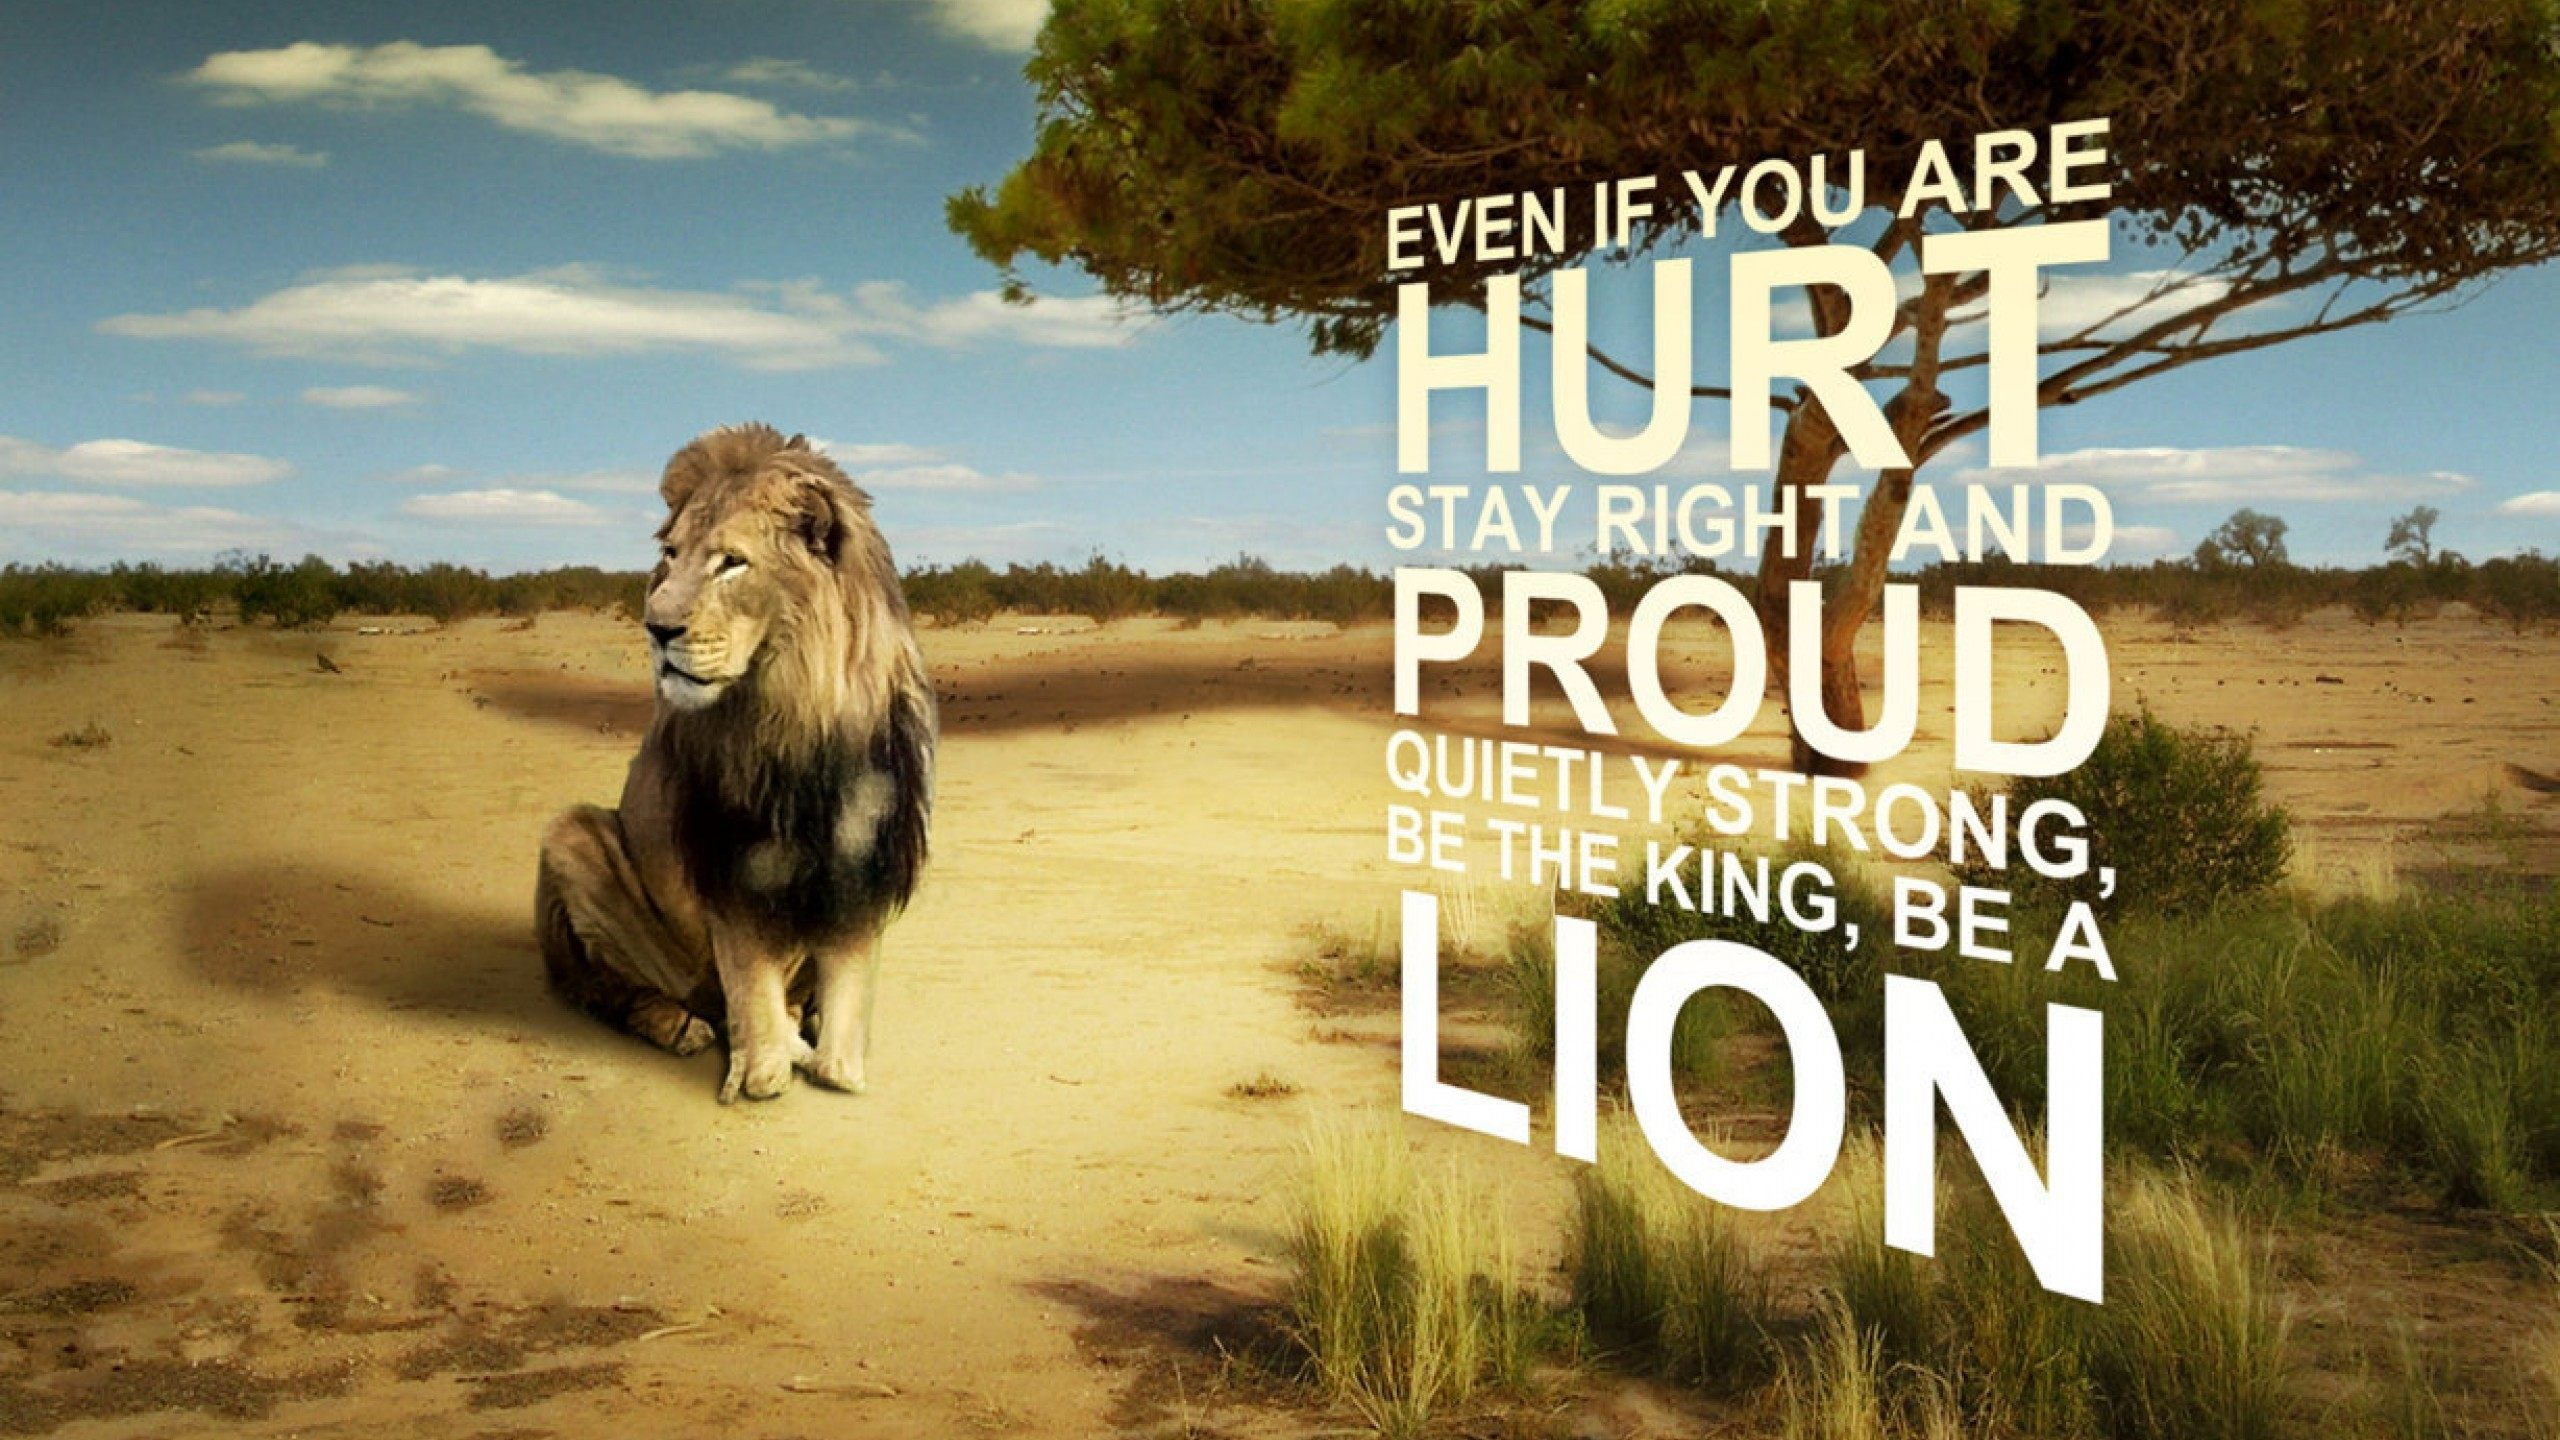 Hd Wallpapers Lion 1080p With Quote - HD Wallpaper